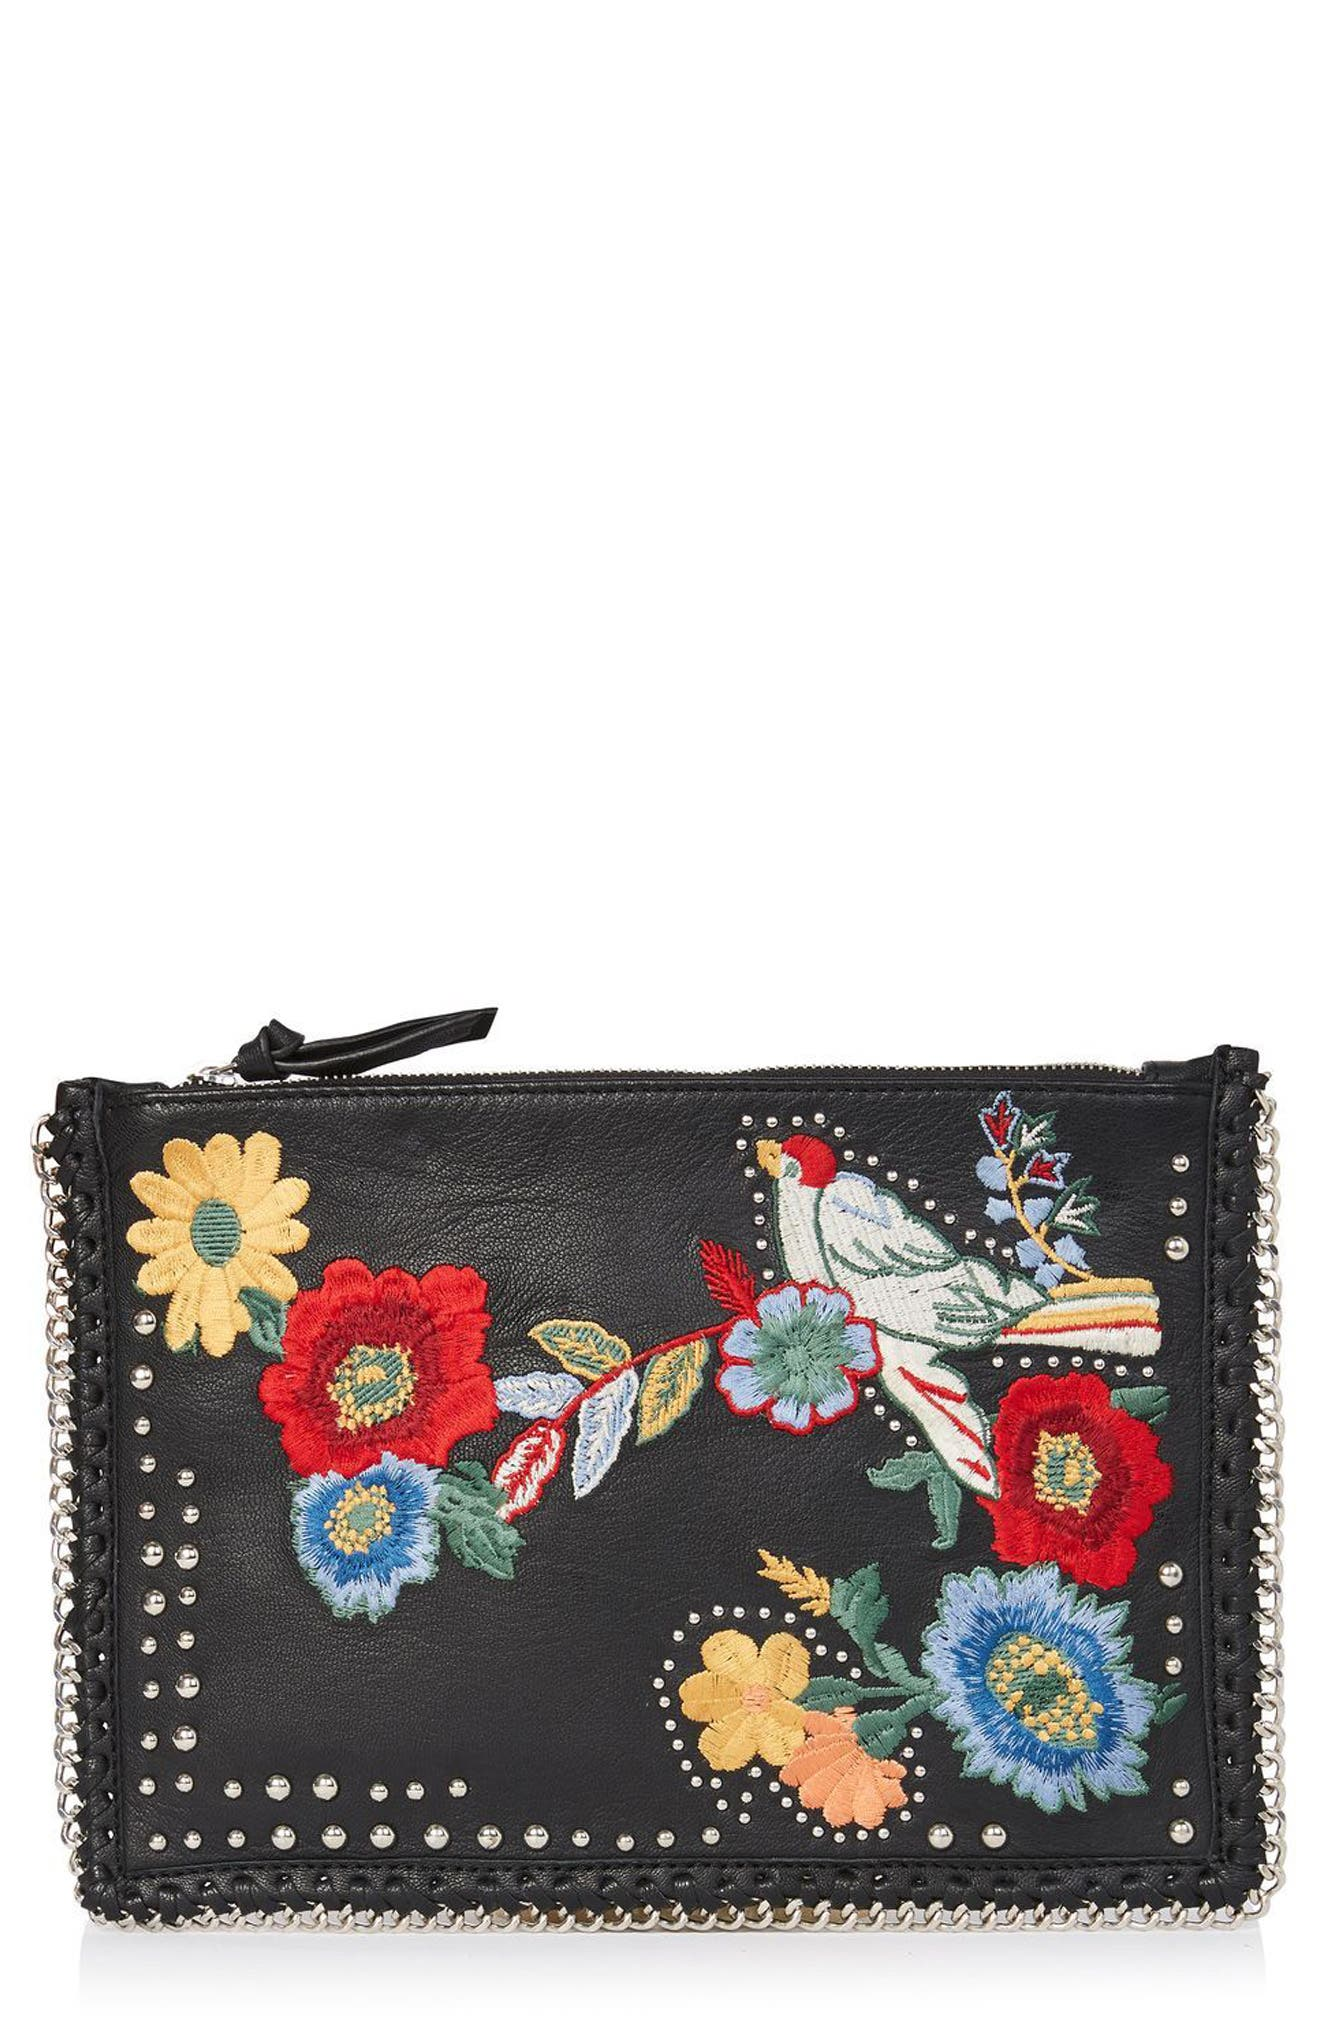 TOPSHOP Oto Embroidered Leather Crossbody Bag